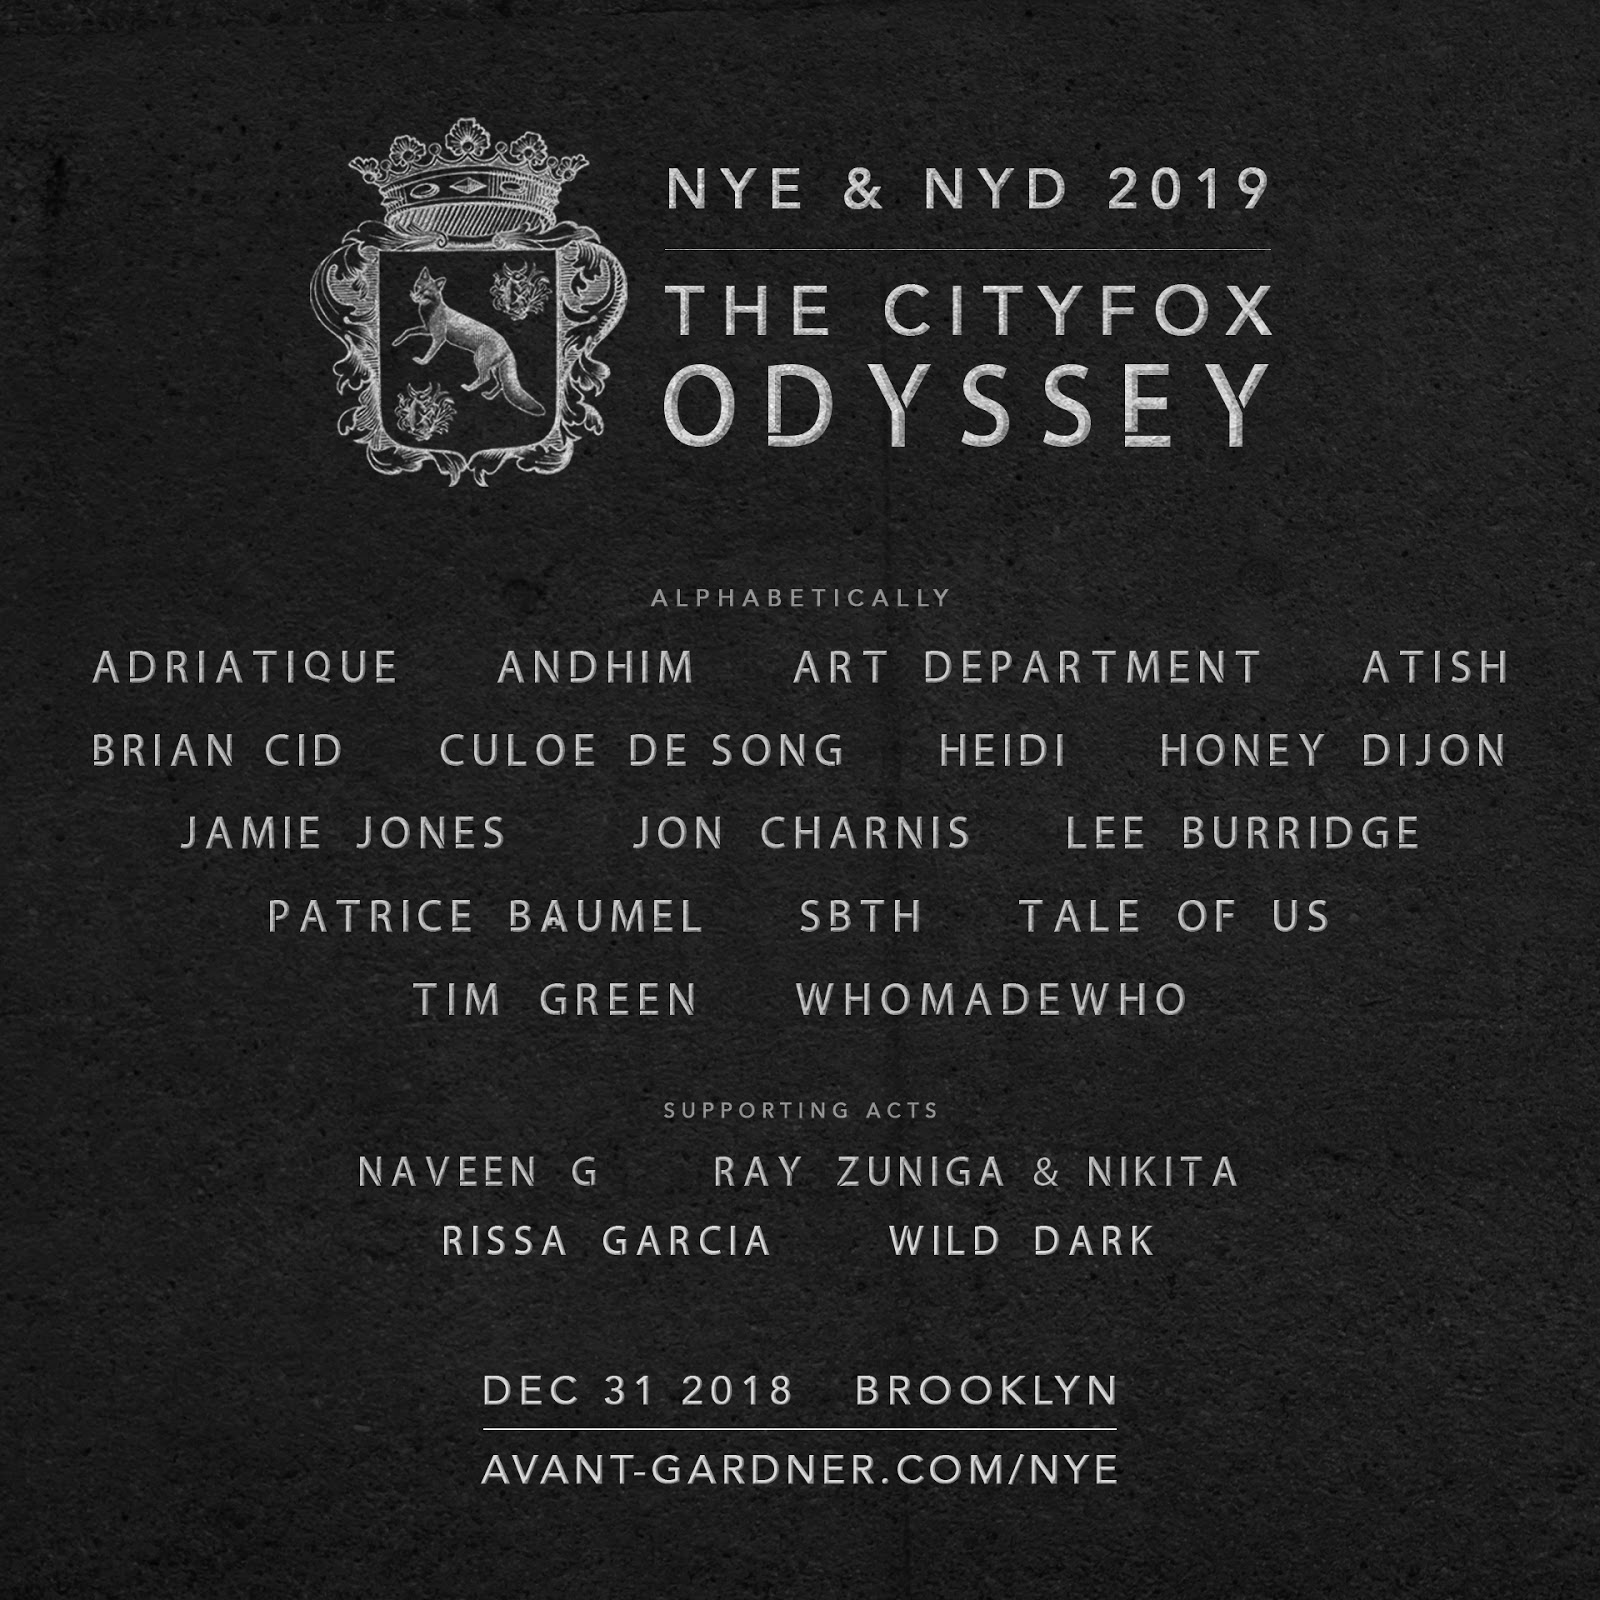 The Cityfox Odyssey New Year's Eve And New Year's Day